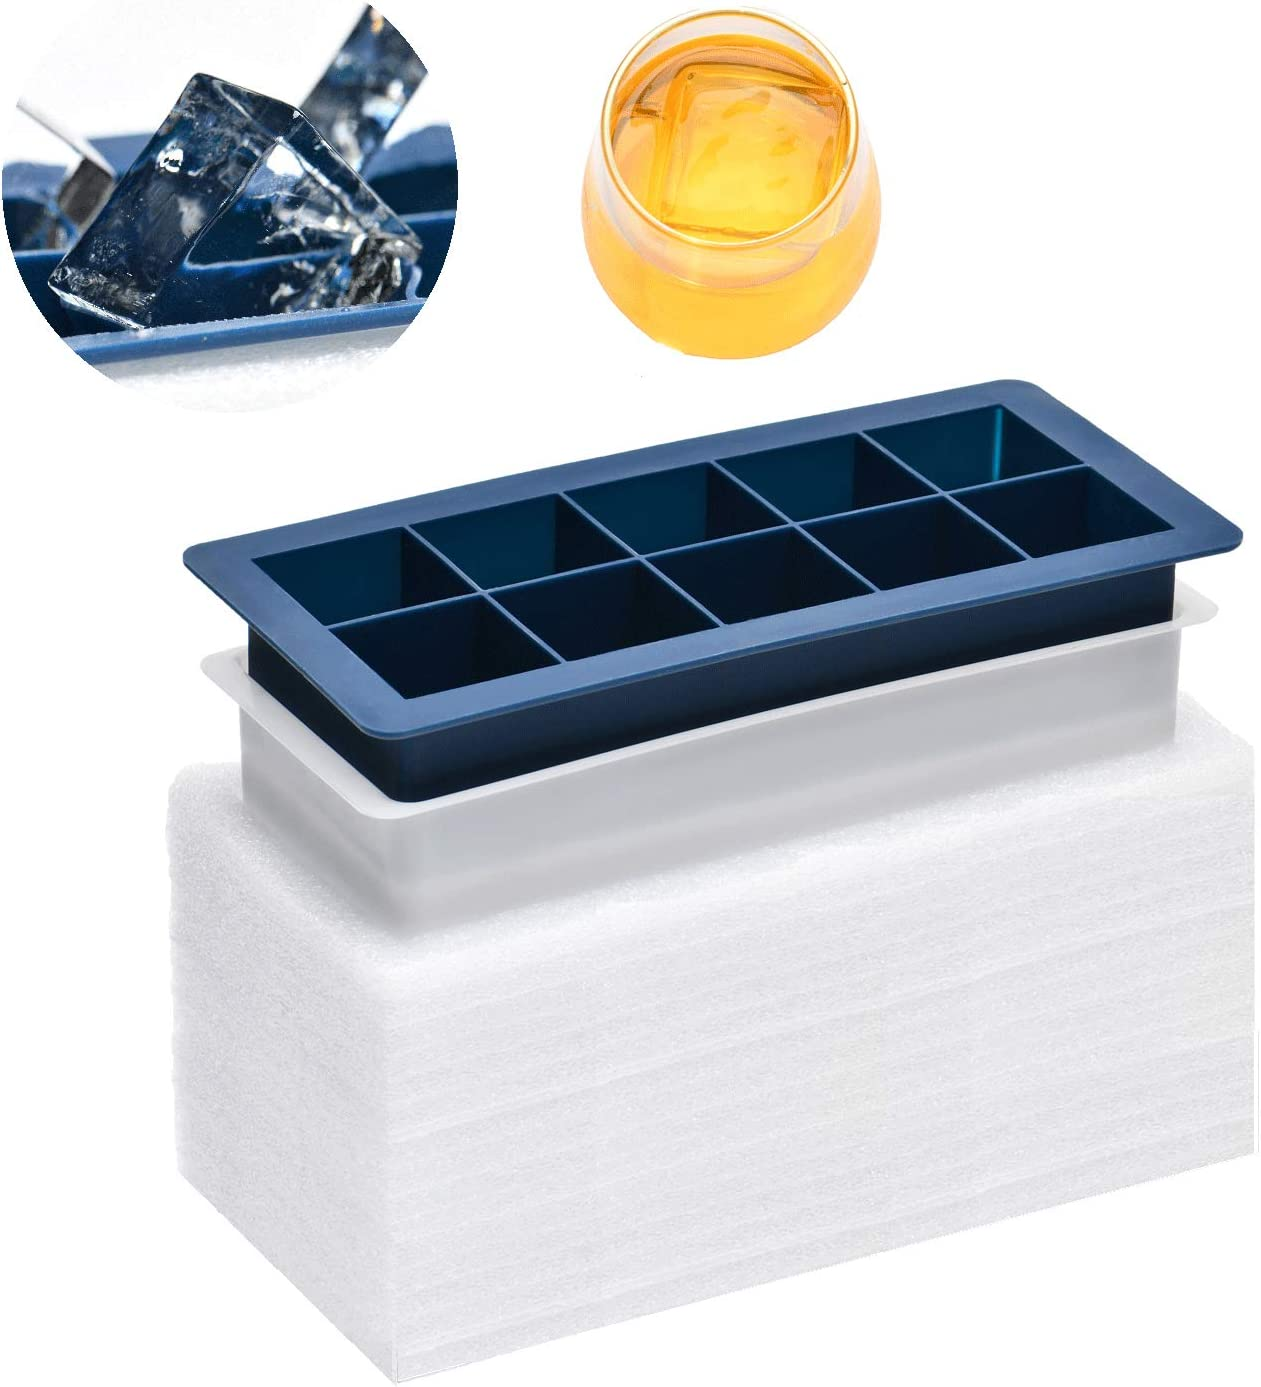 Silicone Clear Ice Cube Tray - Crystal Clear 2 Inch Ice Cube Maker,10 Large Ice Cubes Mold for Whiskey and Cocktail